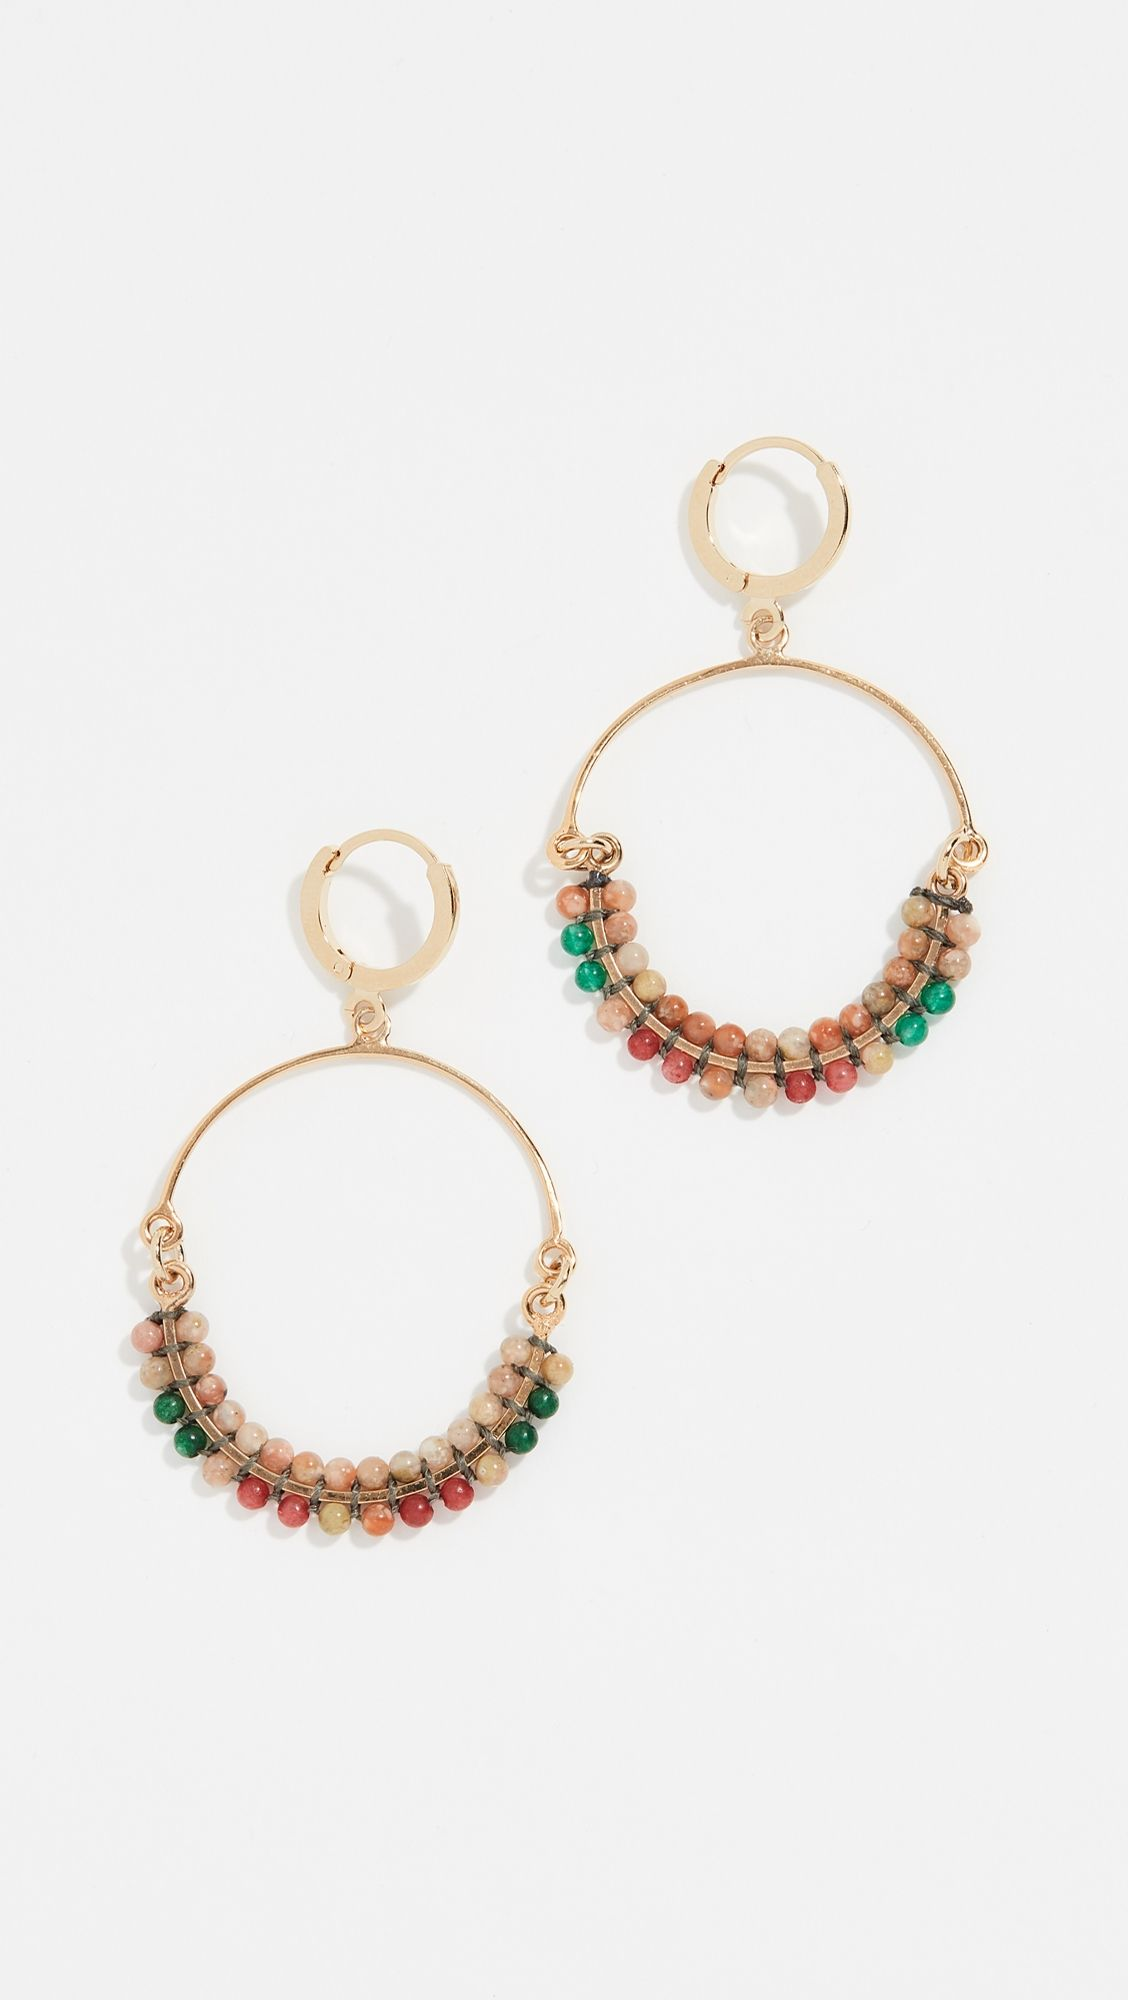 769bce7245e Isabel Marant Boucle Embellished Earrings | Products | Earrings ...